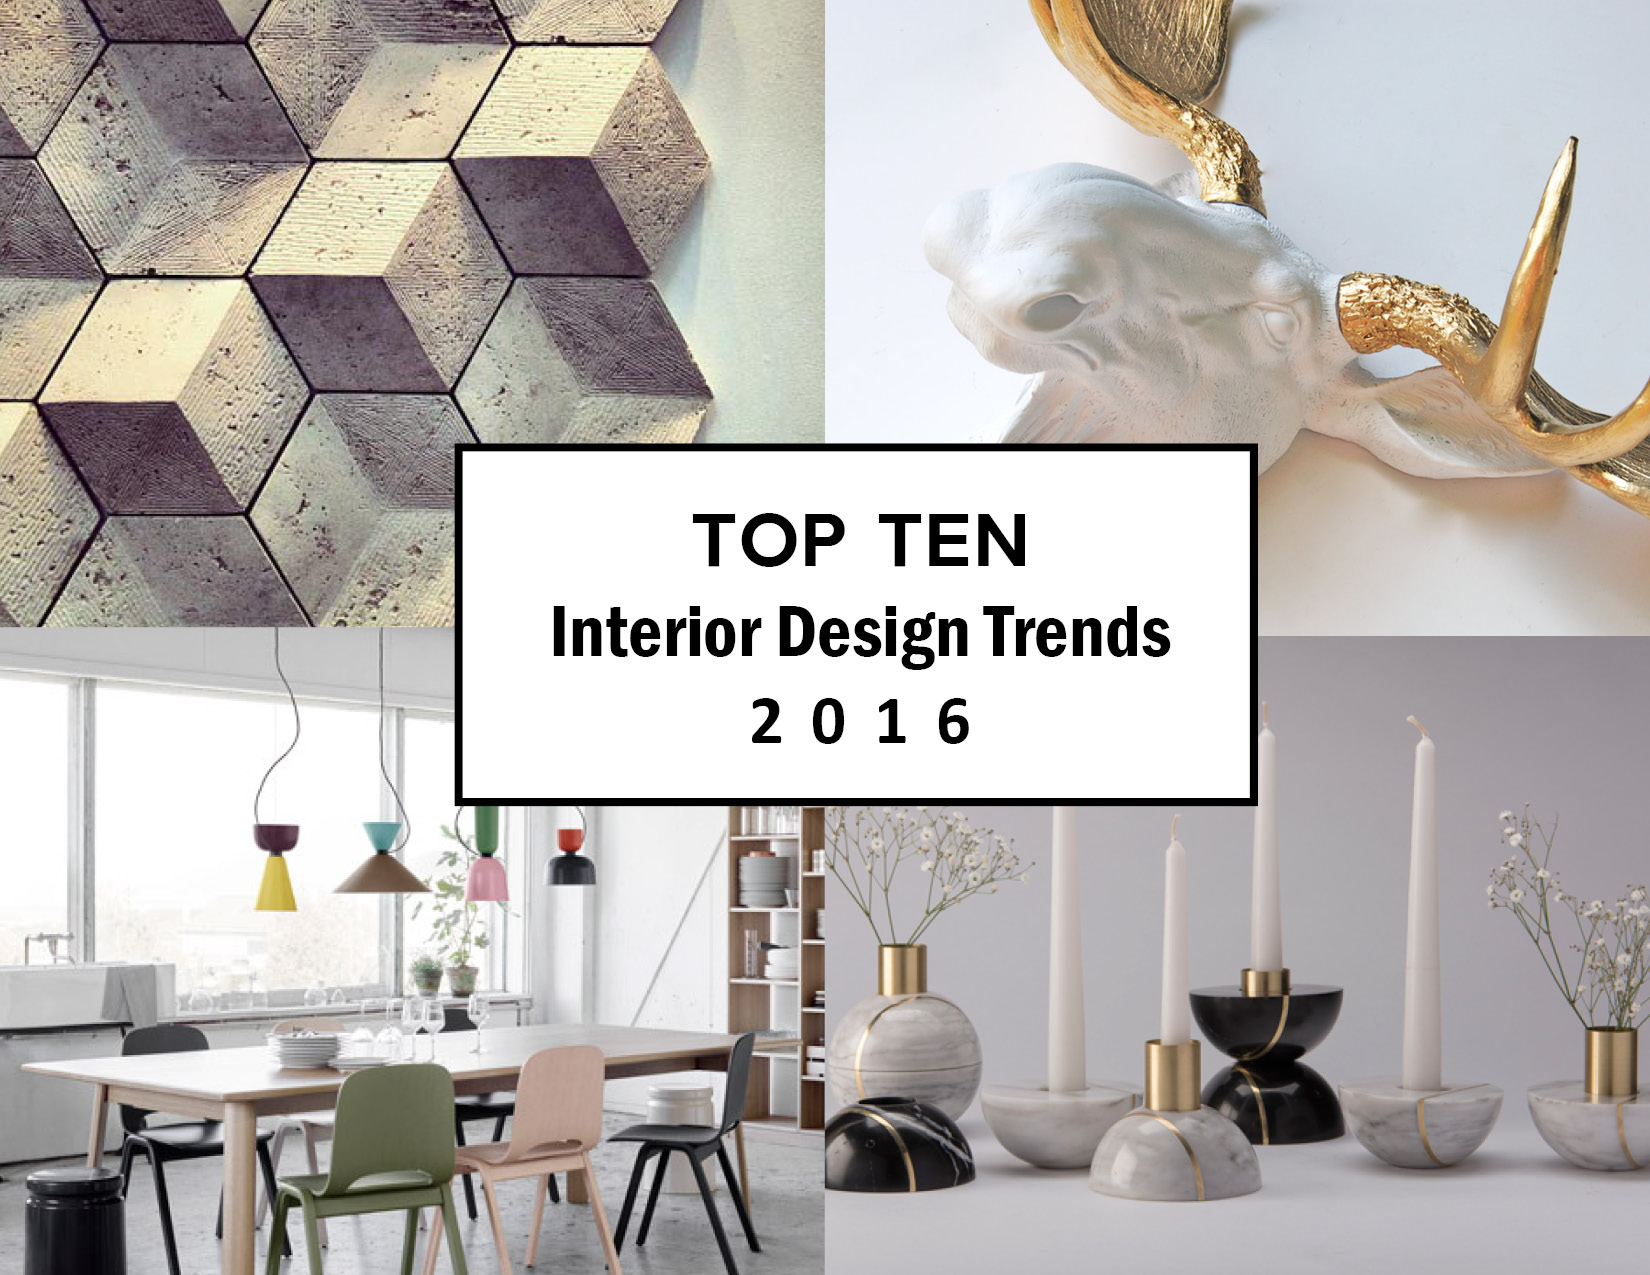 hottest interior design trends for 2016 noam hazan architect